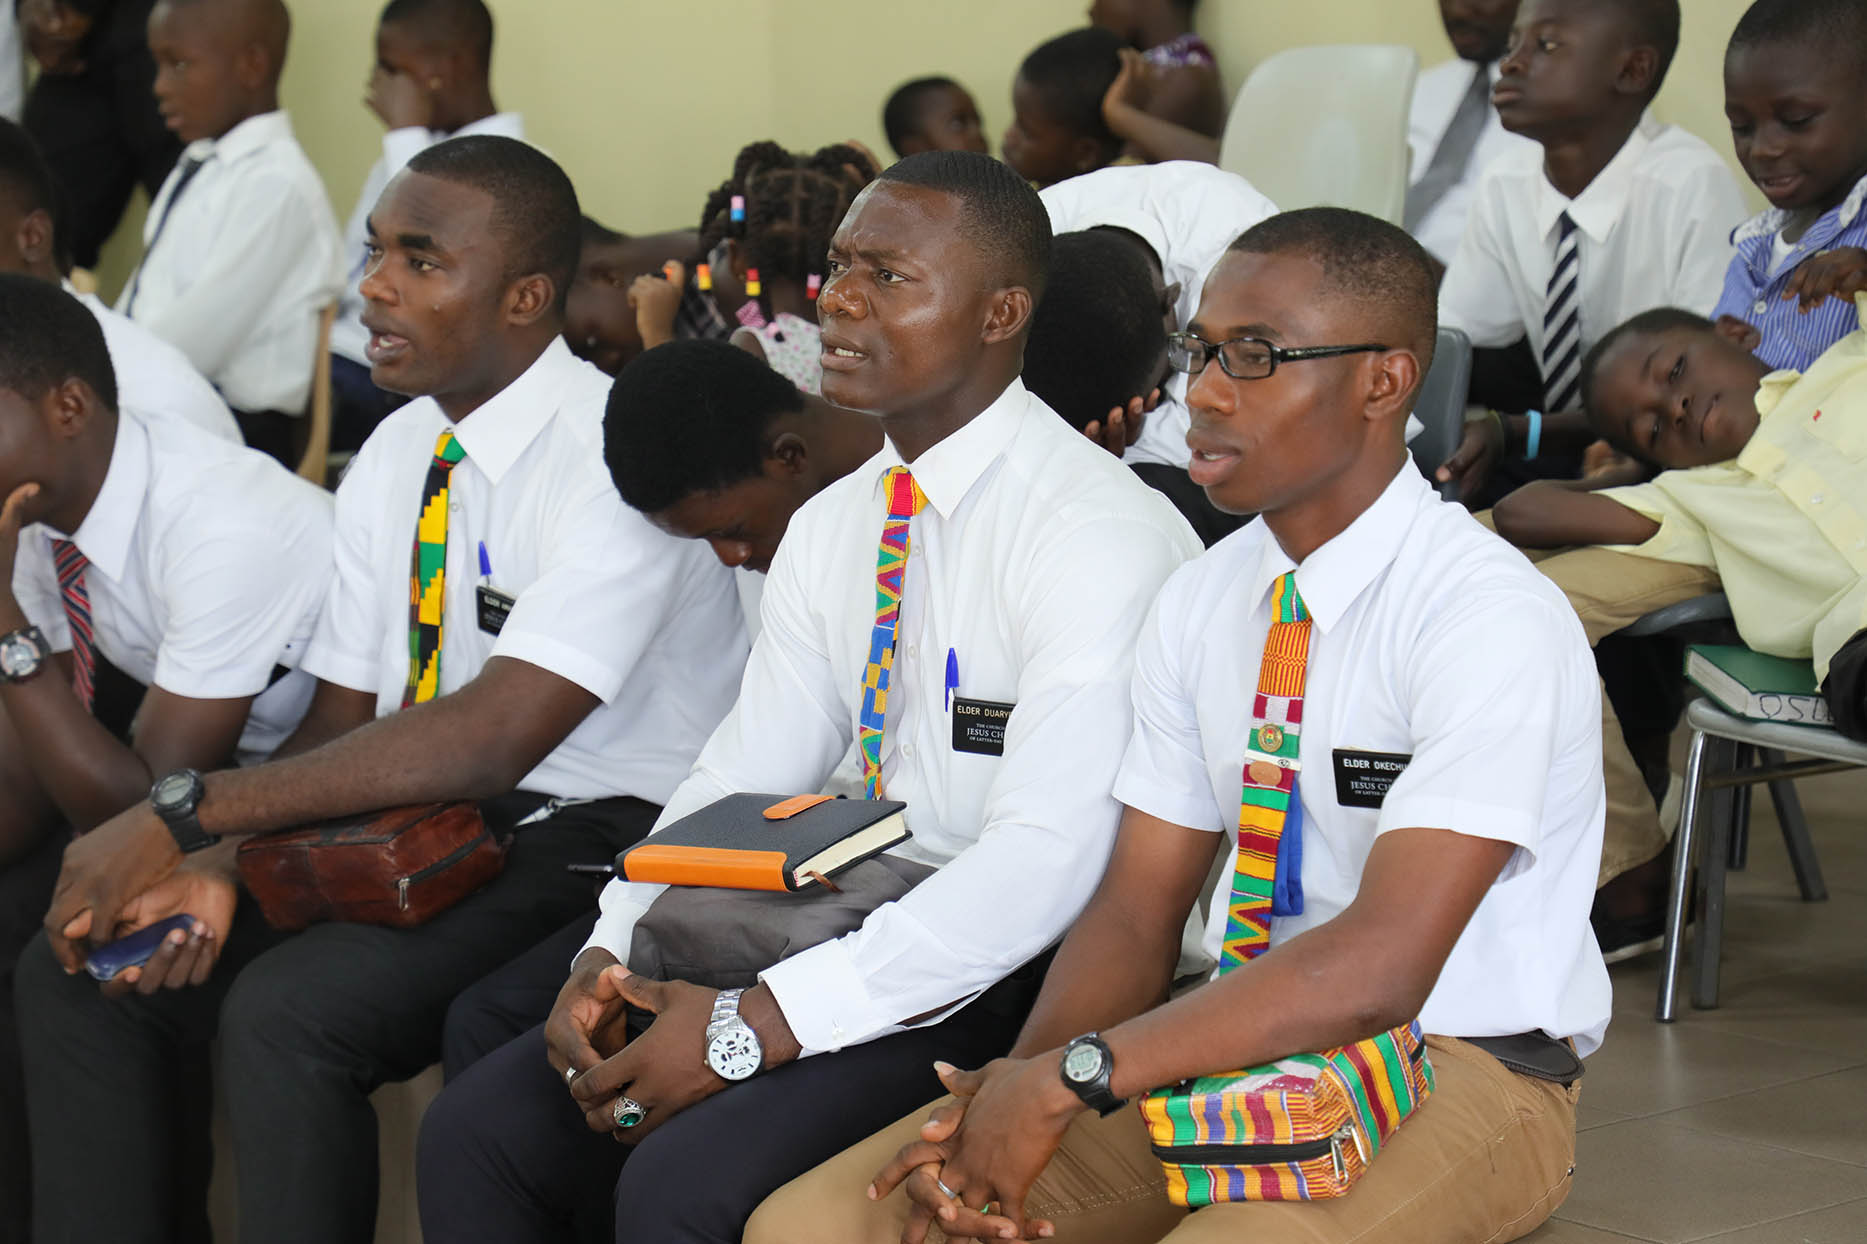 Missionaries serving in Kumasi, Ghana, listen during a stake conference. Elder Neil L. Andersen and Elder Ulisses Soares traveled throughout the Africa West Area from May 19-28, 2018.